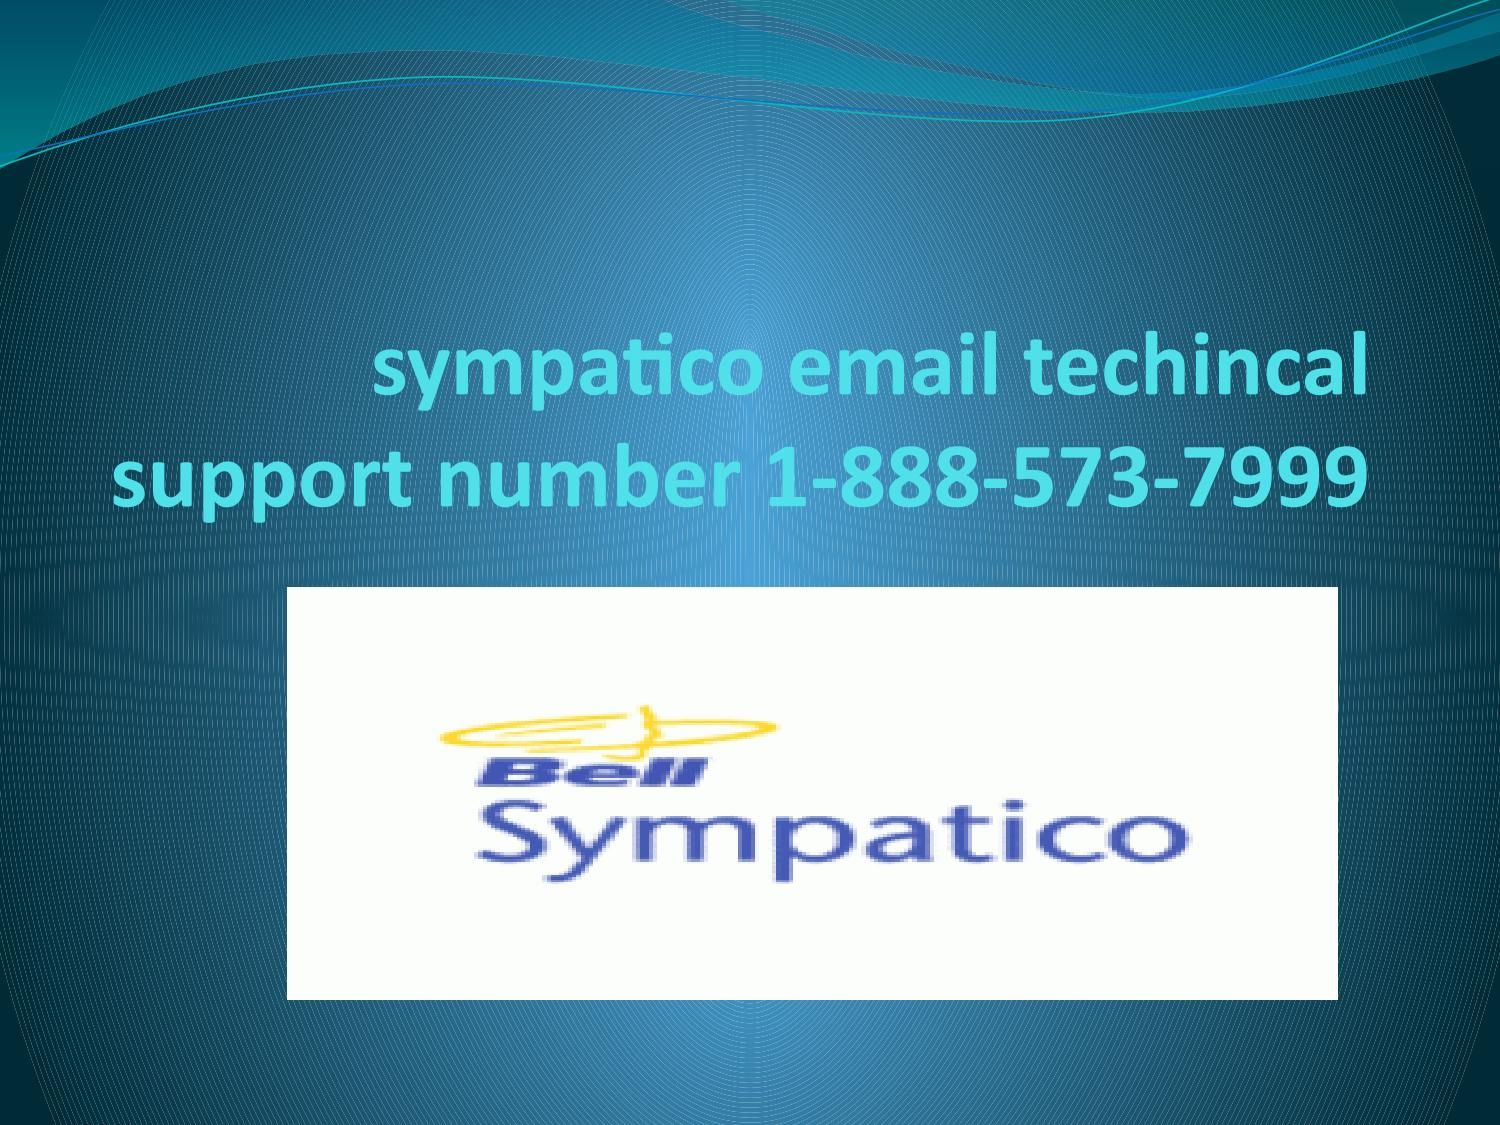 18885737999 Sympatico email technical support